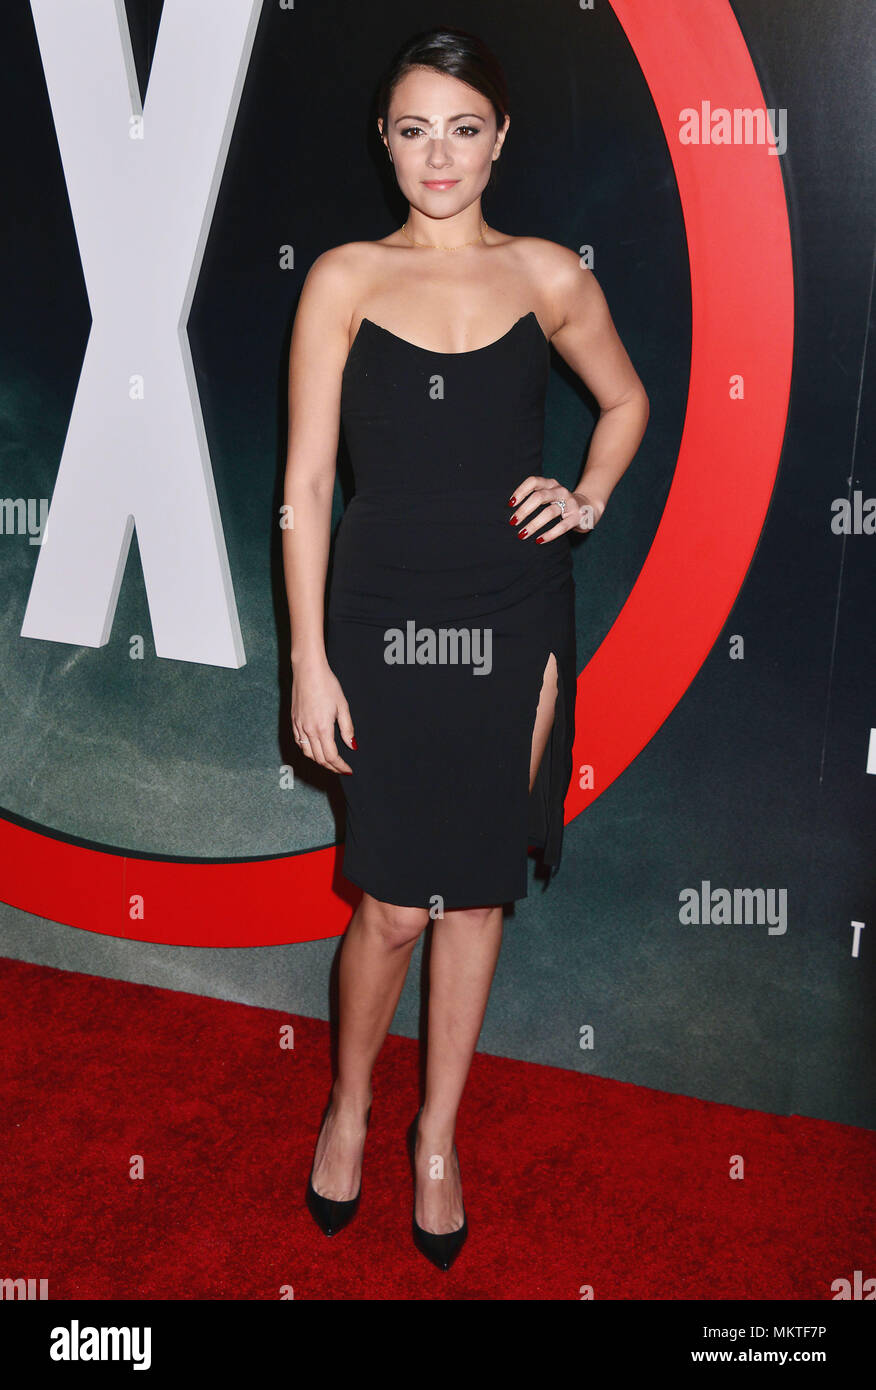 Italia Ricci 058  at The X-Files Premiere at California Science Center in Los Angeles, CA  January 12, 2016.-------- Italia Ricci 058  --------- Event in Hollywood Life - California,  Red Carpet Event, Vertical, USA, Film Industry, Celebrities,  Photography, Bestof, Arts Culture and Entertainment, Topix Celebrities fashion /  from the Red Carpet-2016, one person, Vertical, Best of, Hollywood Life, Event in Hollywood Life - California,  Red Carpet and backstage, USA, Film Industry, Celebrities,  movie celebrities, TV celebrities, Music celebrities, Photography, Bestof, Arts Culture and Entertai - Stock Image